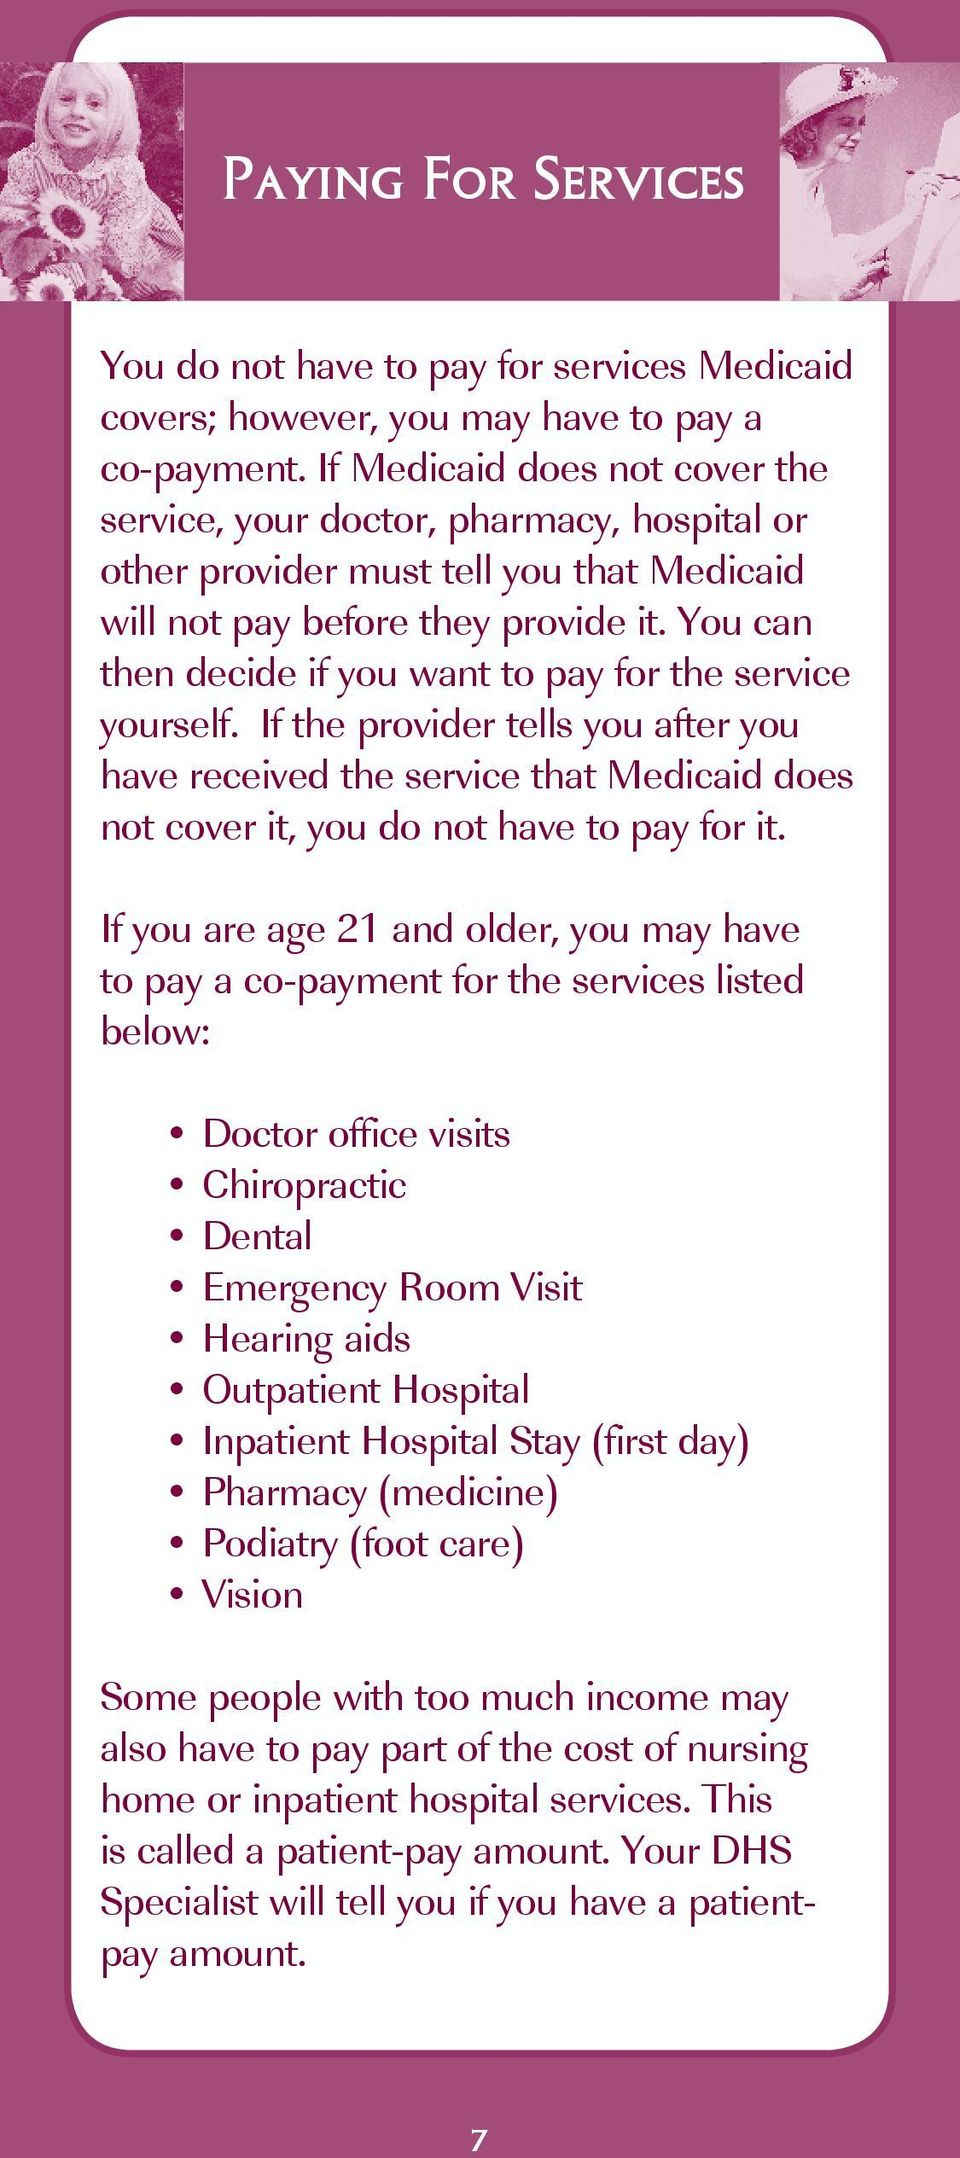 You can then decide if you want to pay for the service yourself. If the provider tells you after you have received the service that Medicaid does not cover it, you do not have to pay for it.